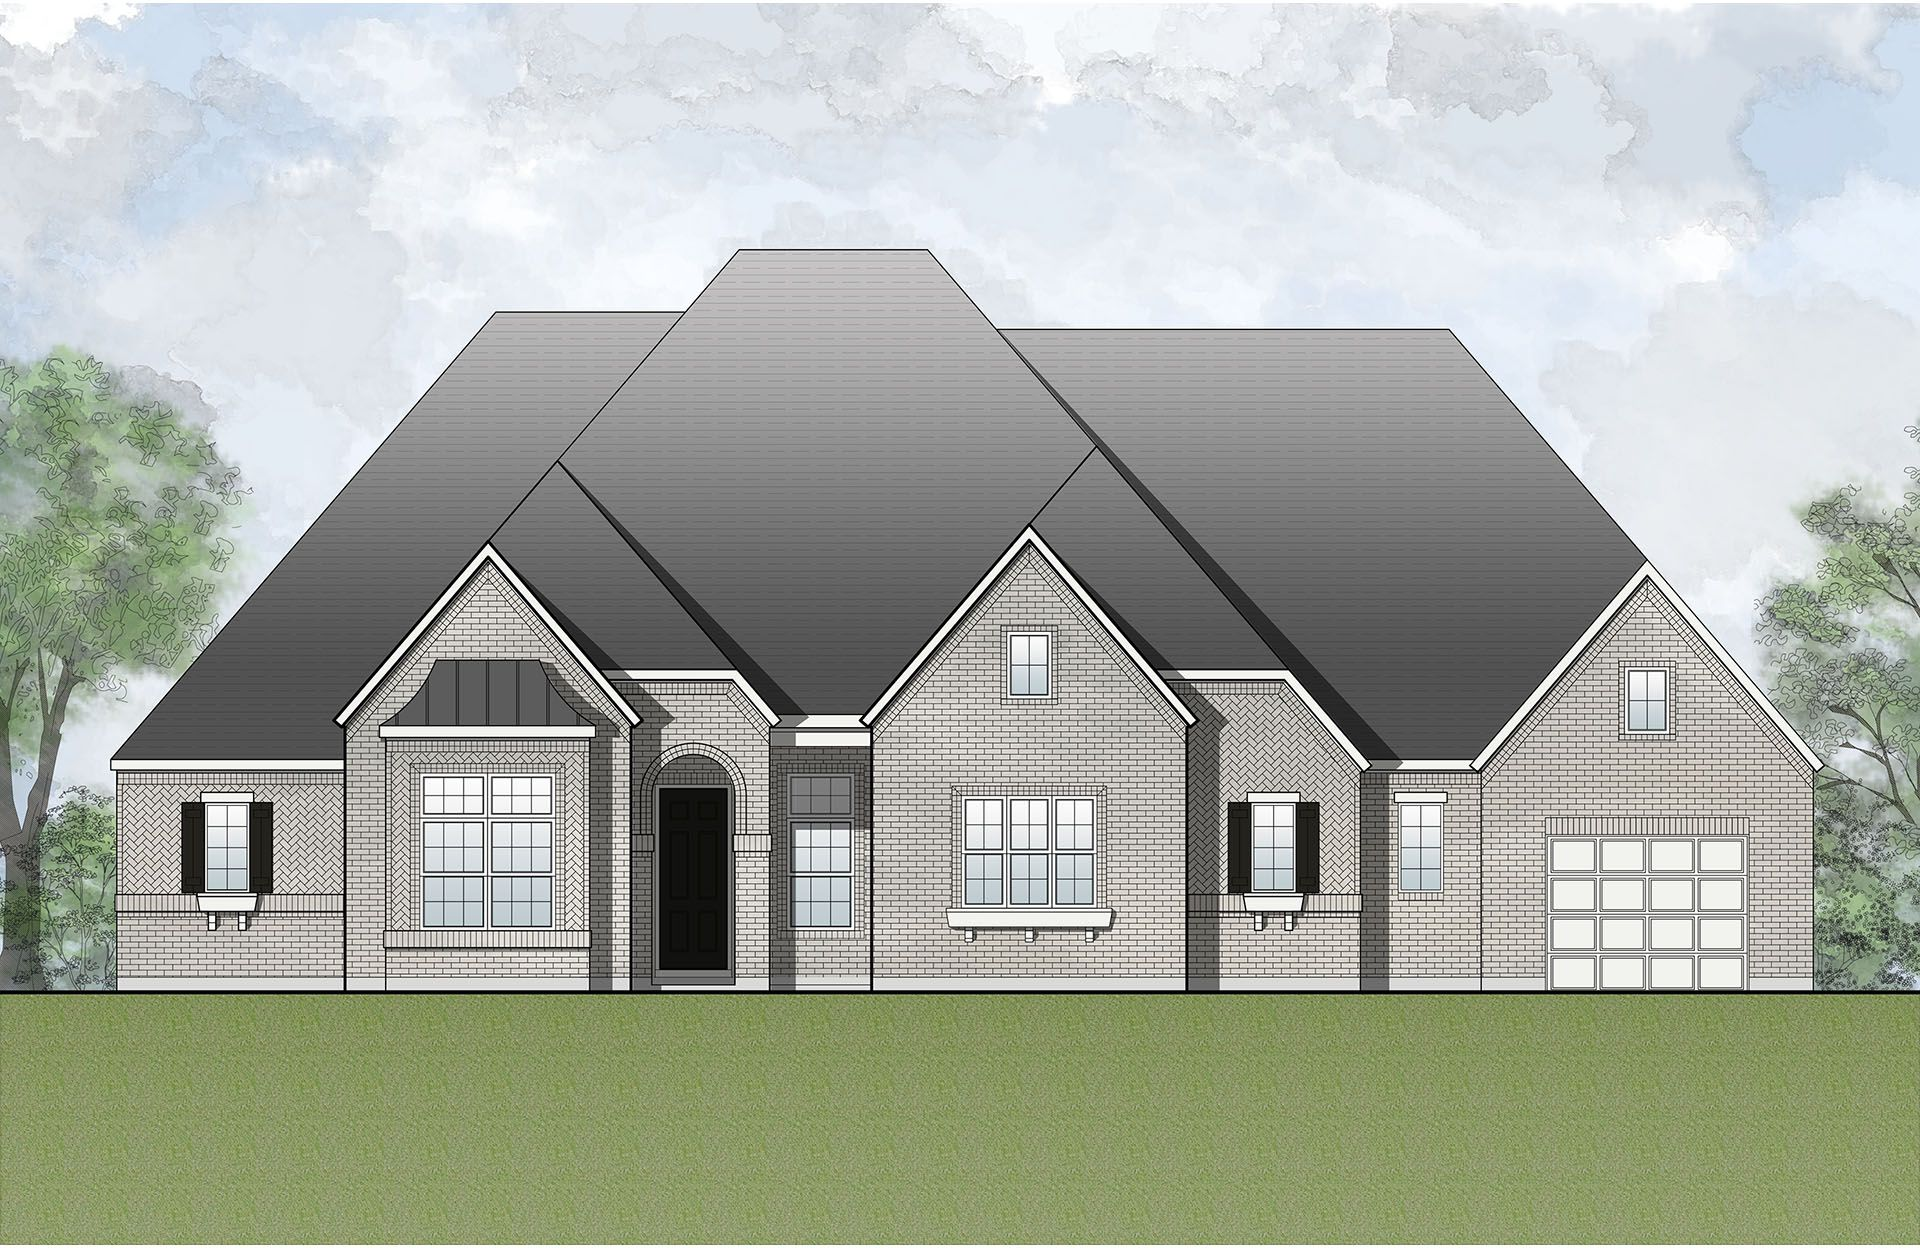 Single Family for Sale at Royal Brook At Kingwood - Marley 3306 Lockridge Harbor Lane Porter, Texas 77365 United States